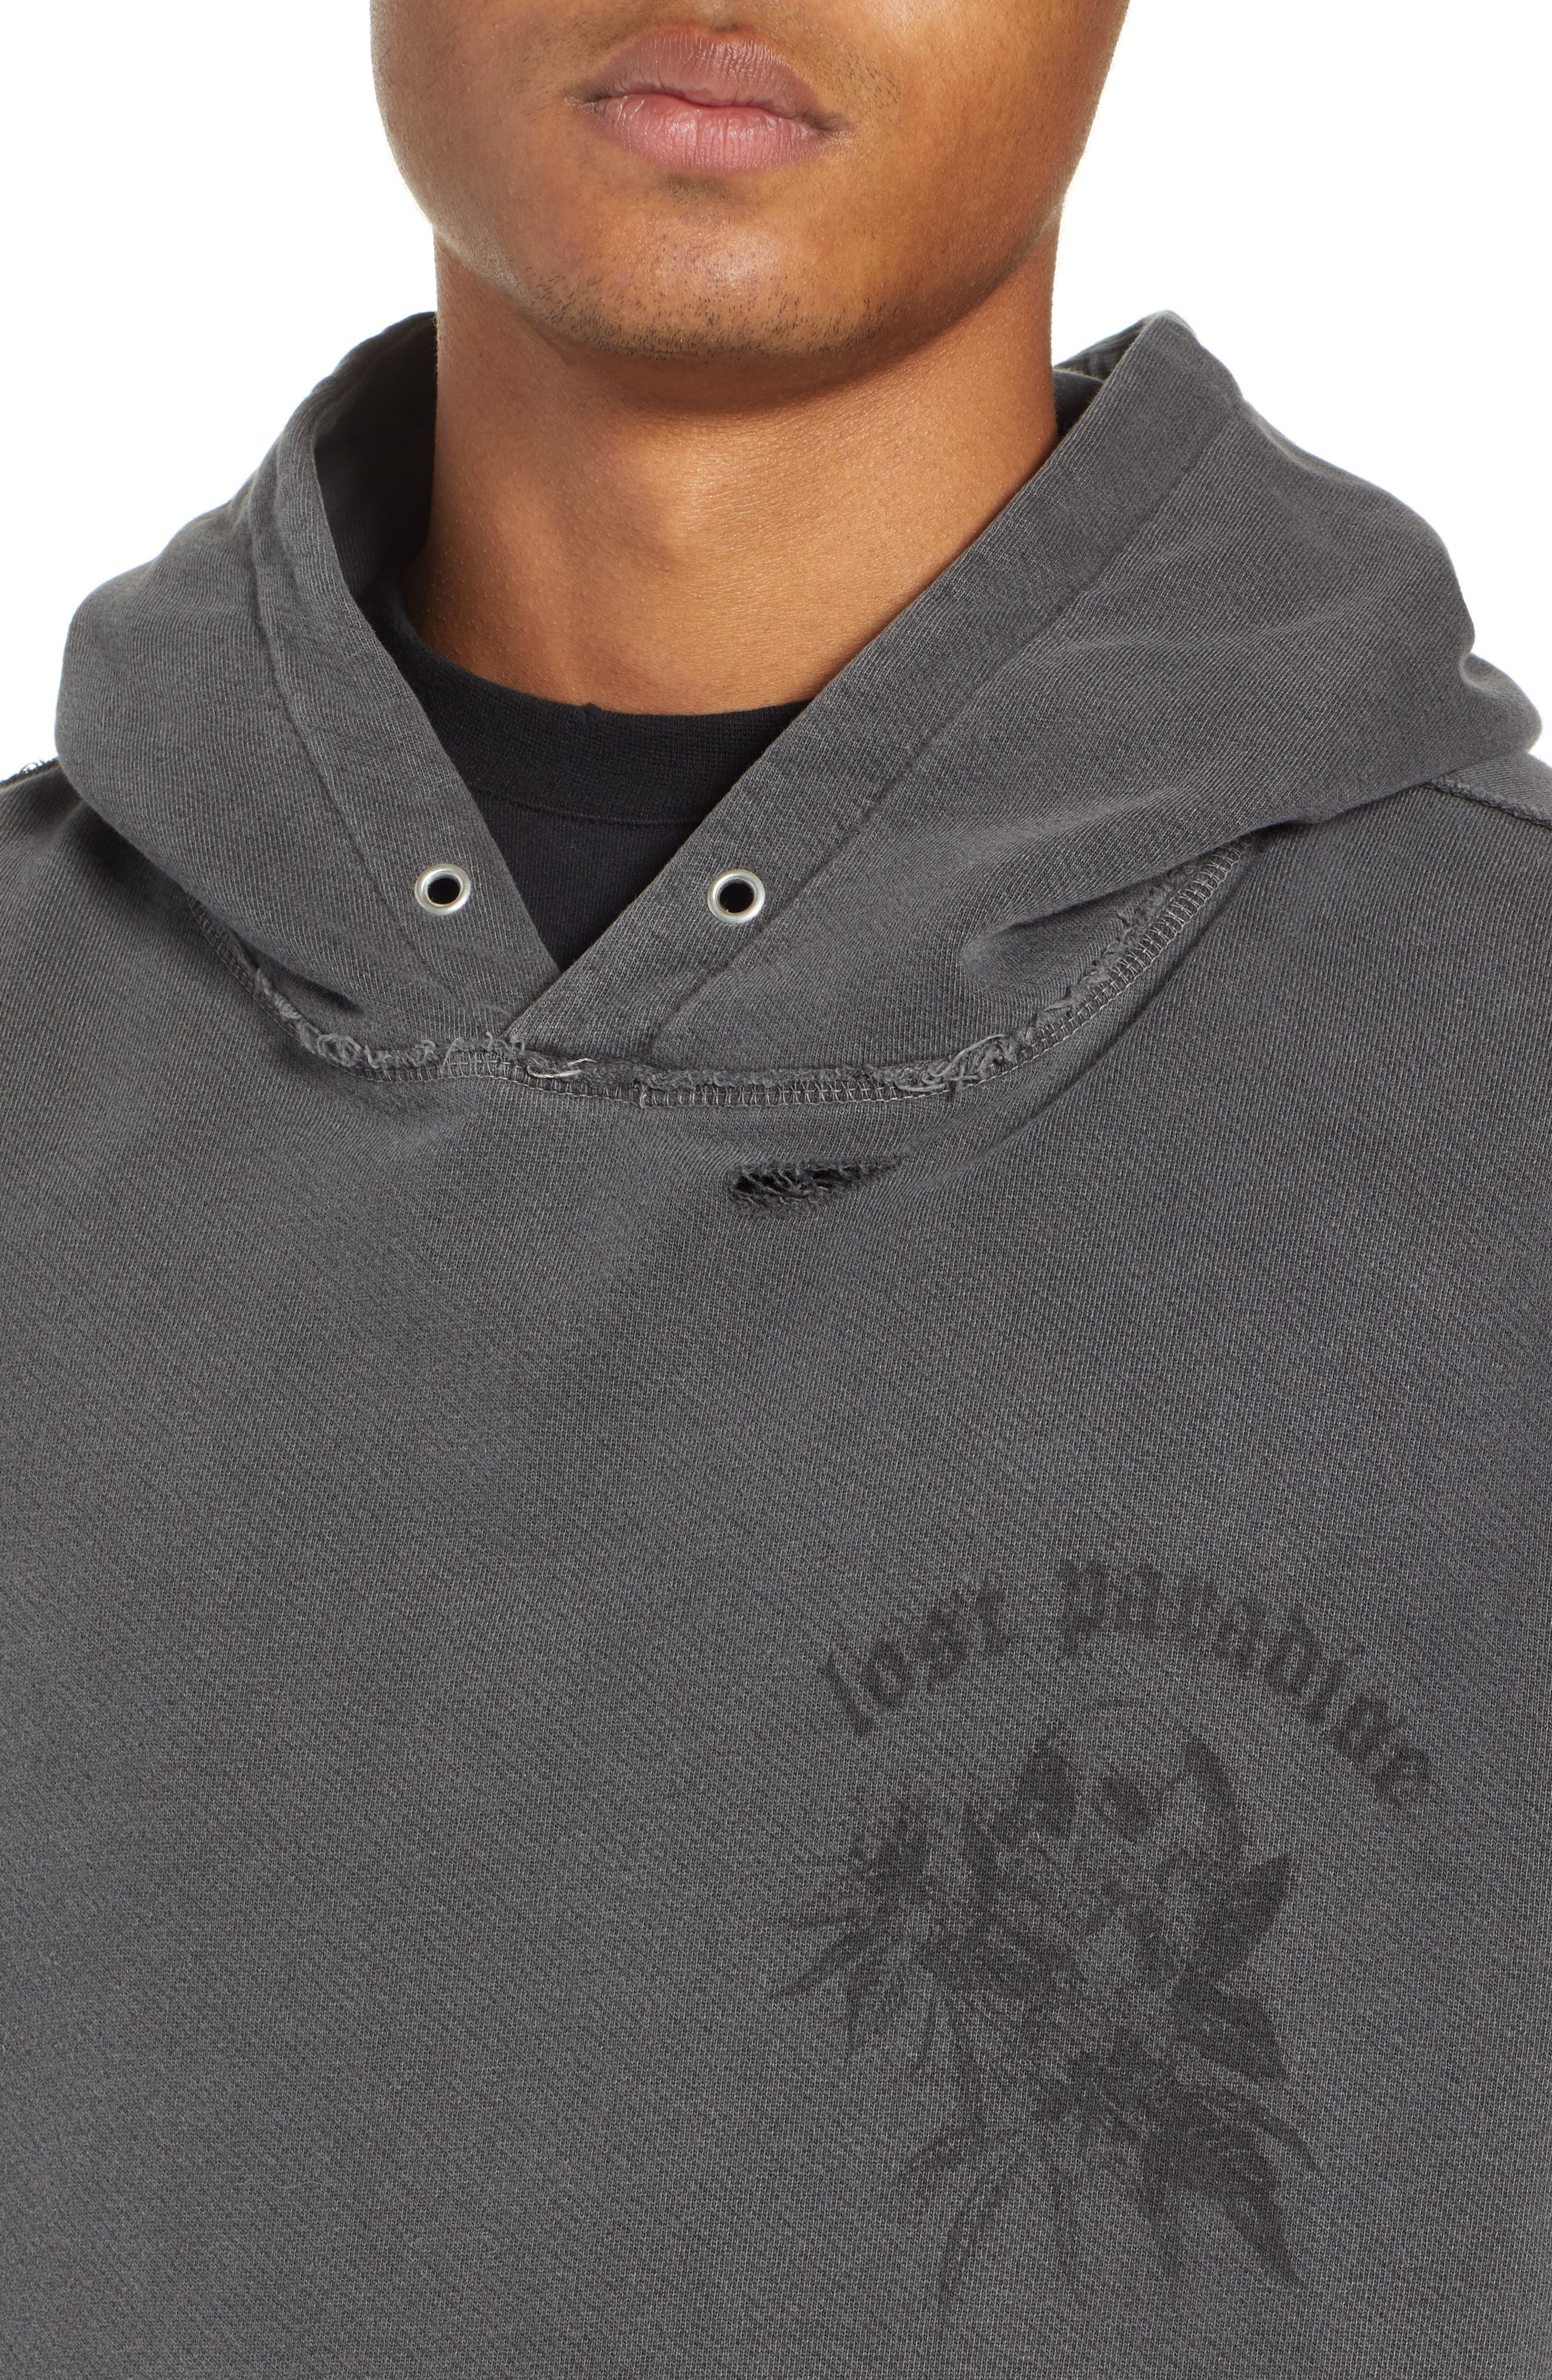 THE KOOPLES, Oversize Hoodie, Alternate thumbnail 4, color, 050